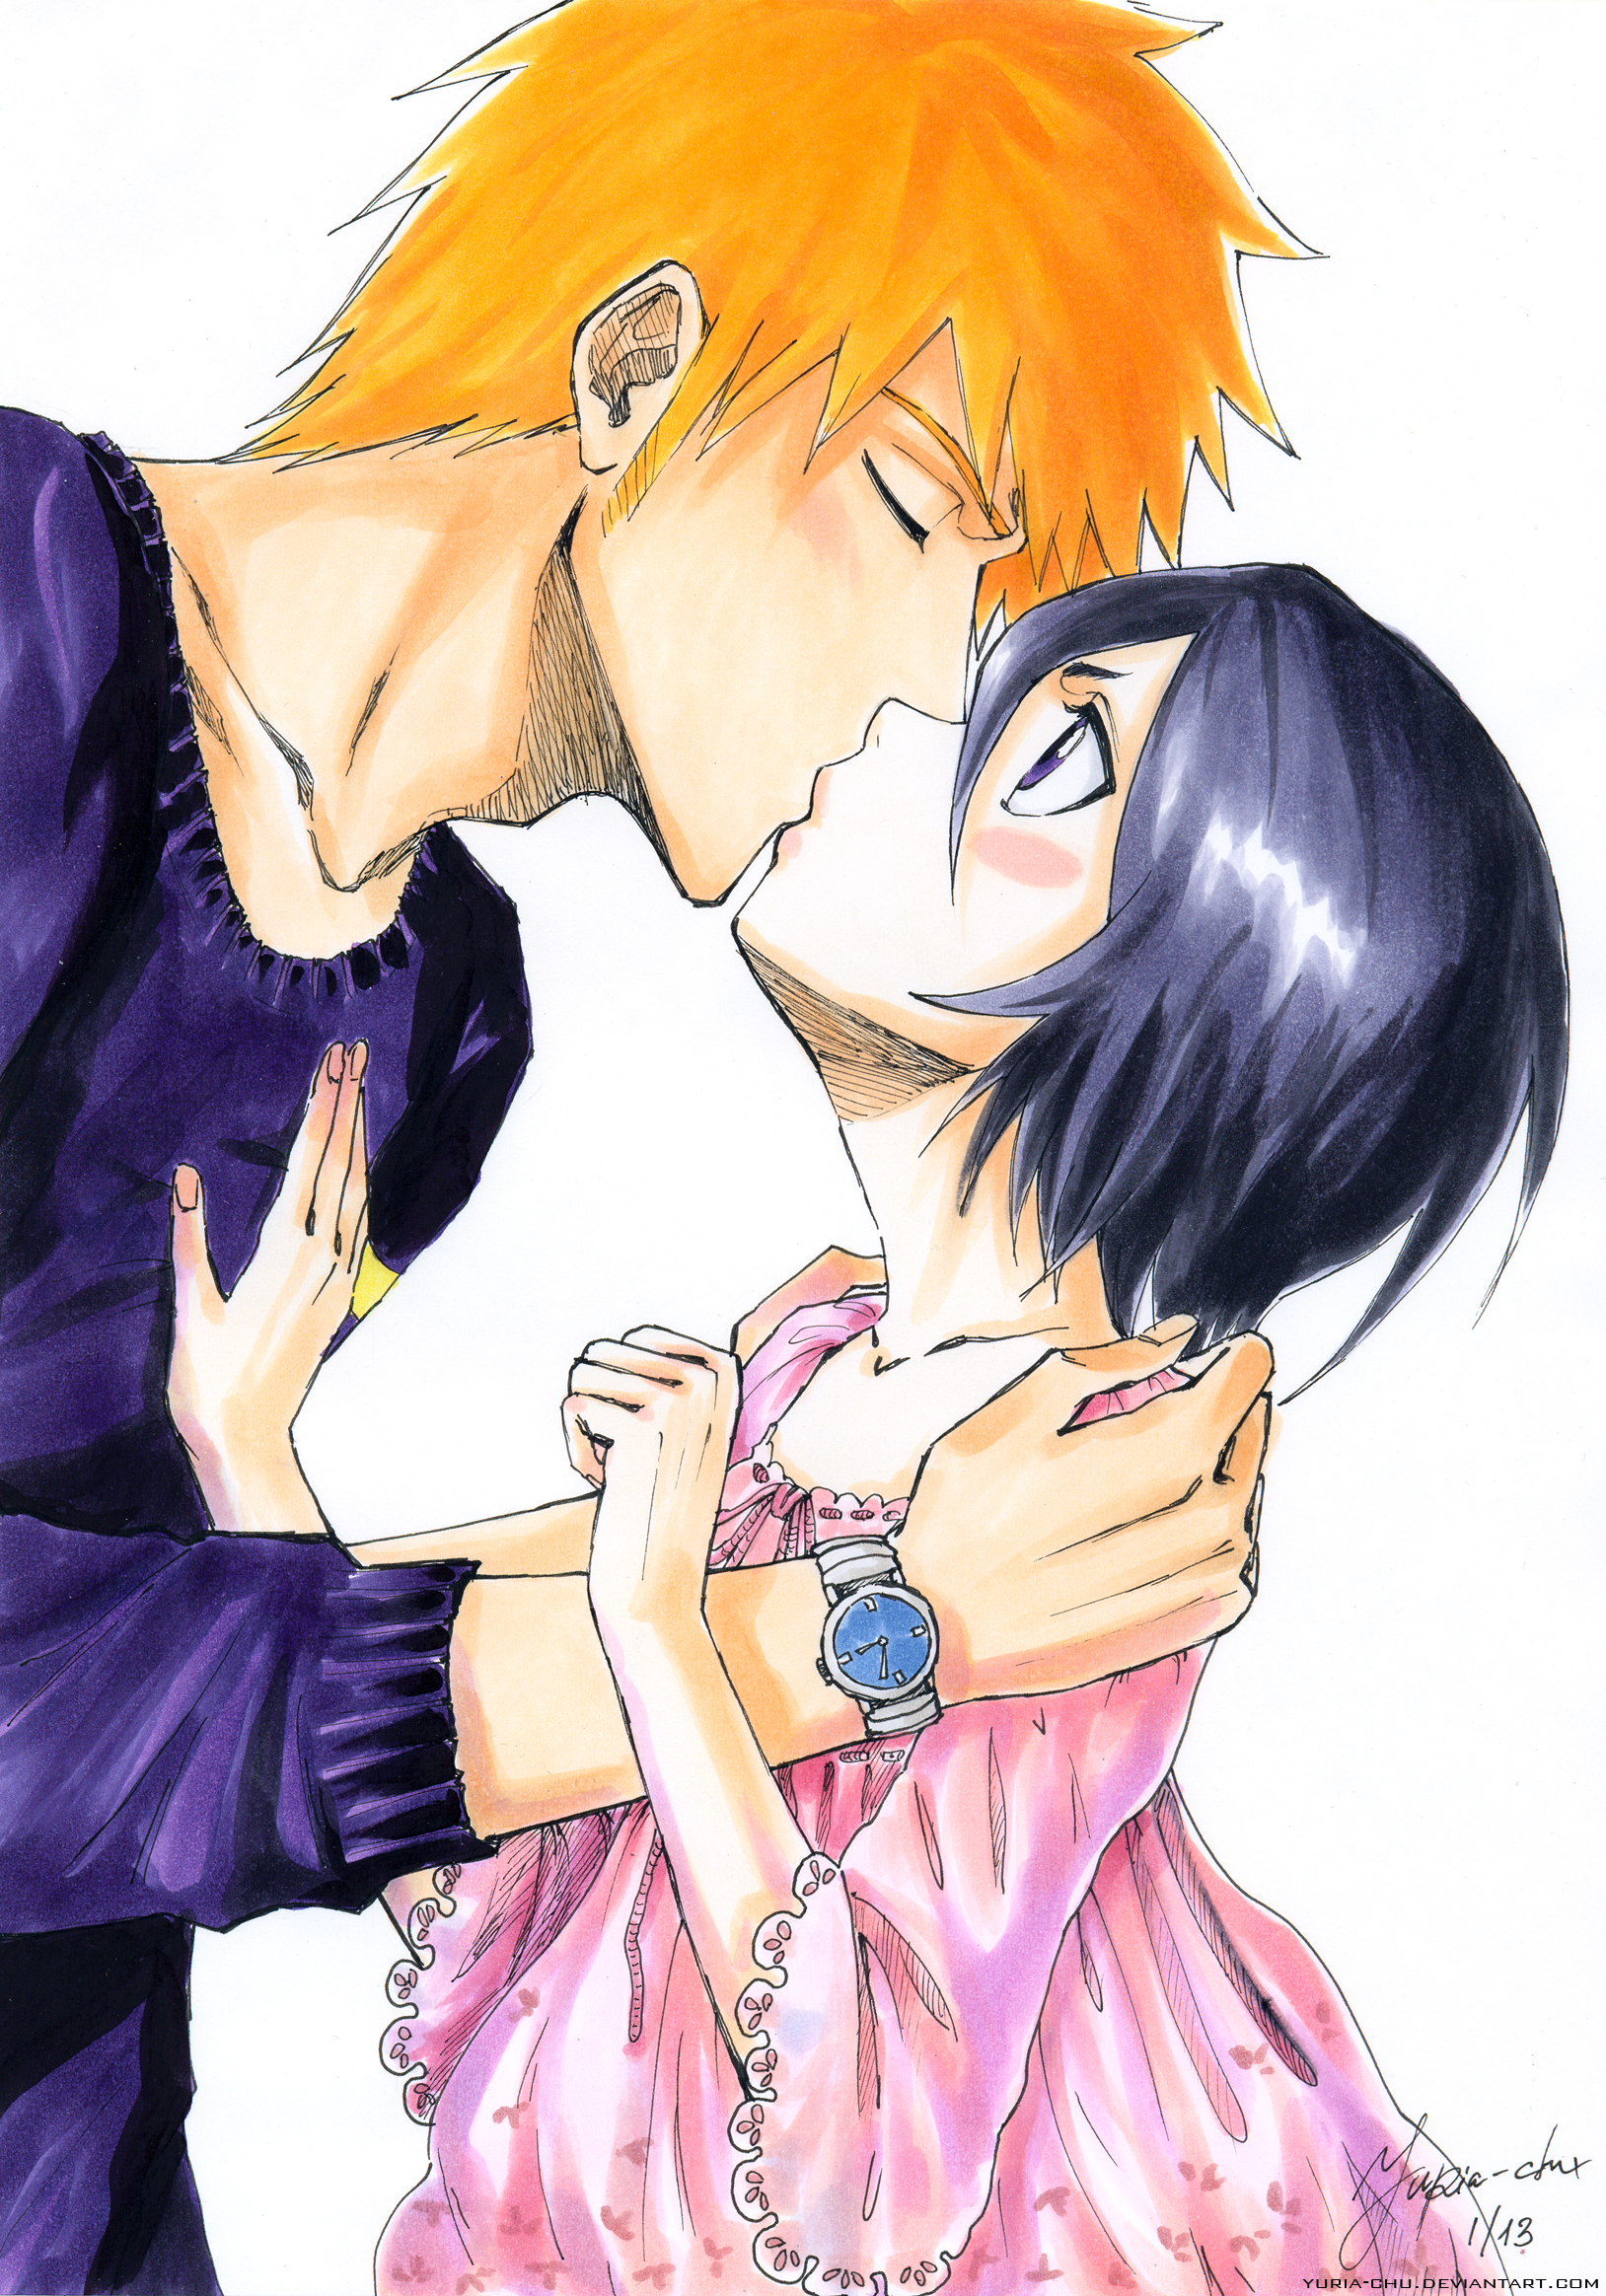 ichigo and rukia kiss - photo #19